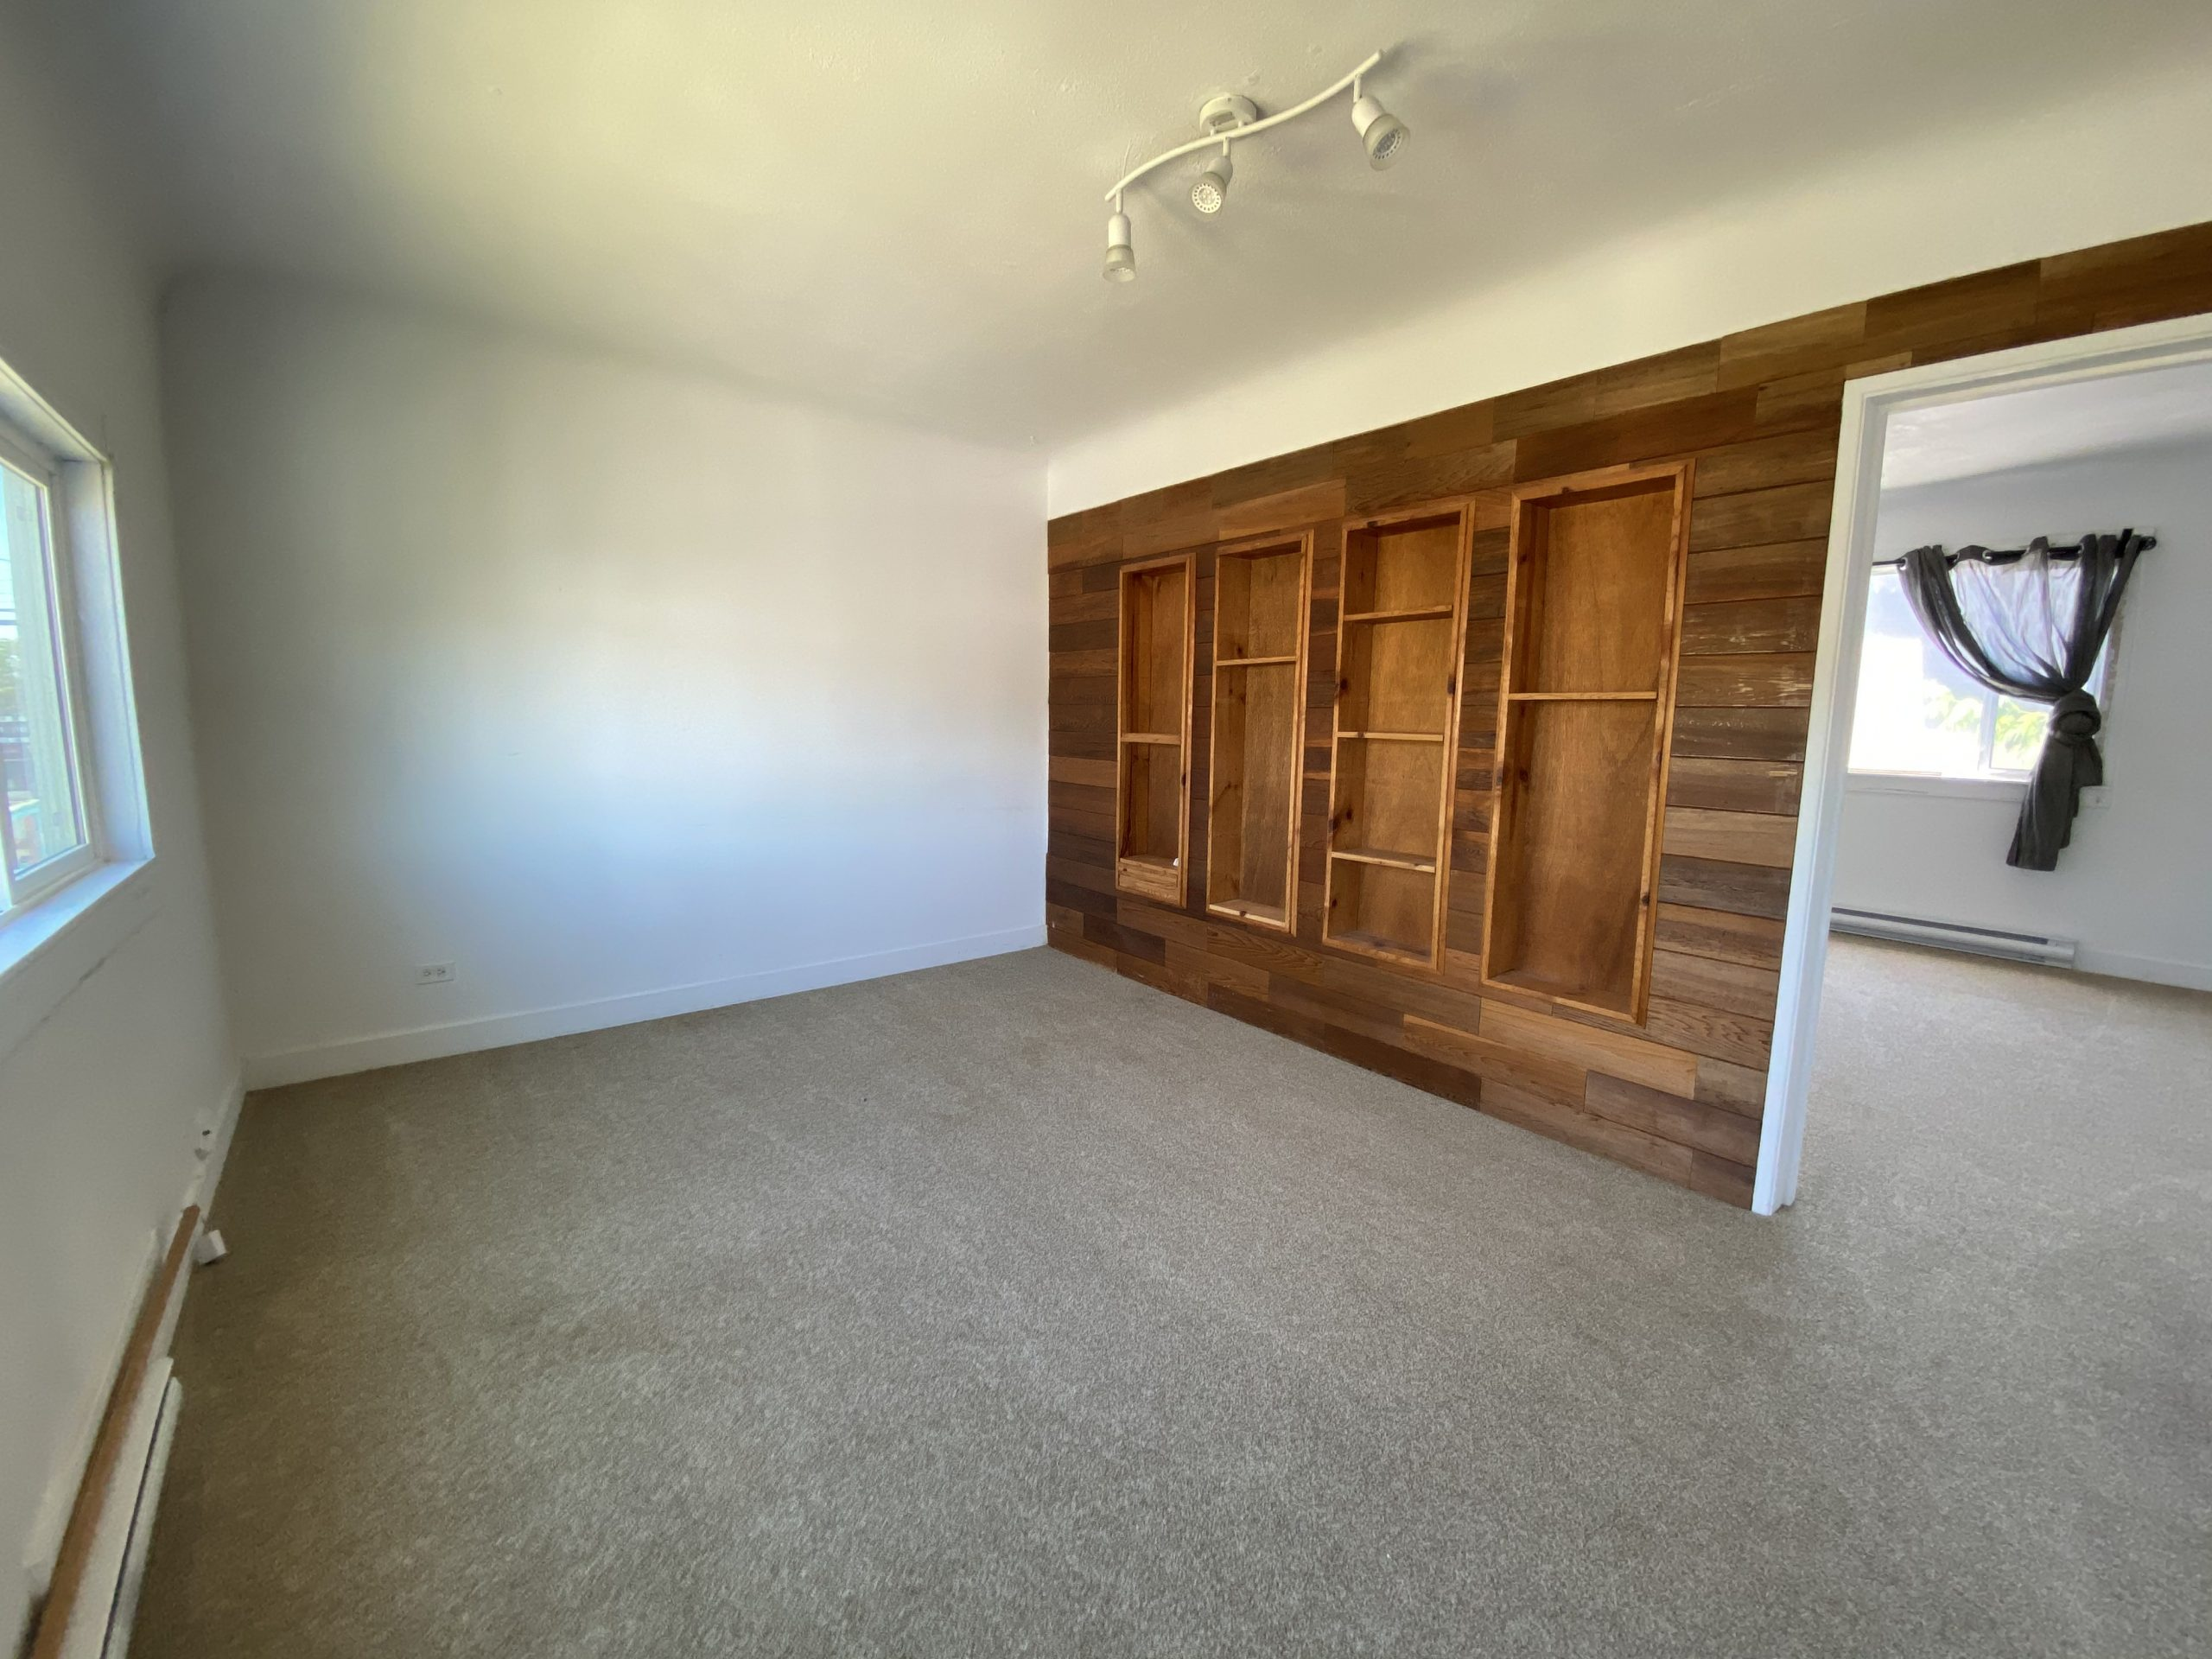 [LEASED] Richmond – 3 Bed – 1 Bath – 900 sq ft – Top Level of House